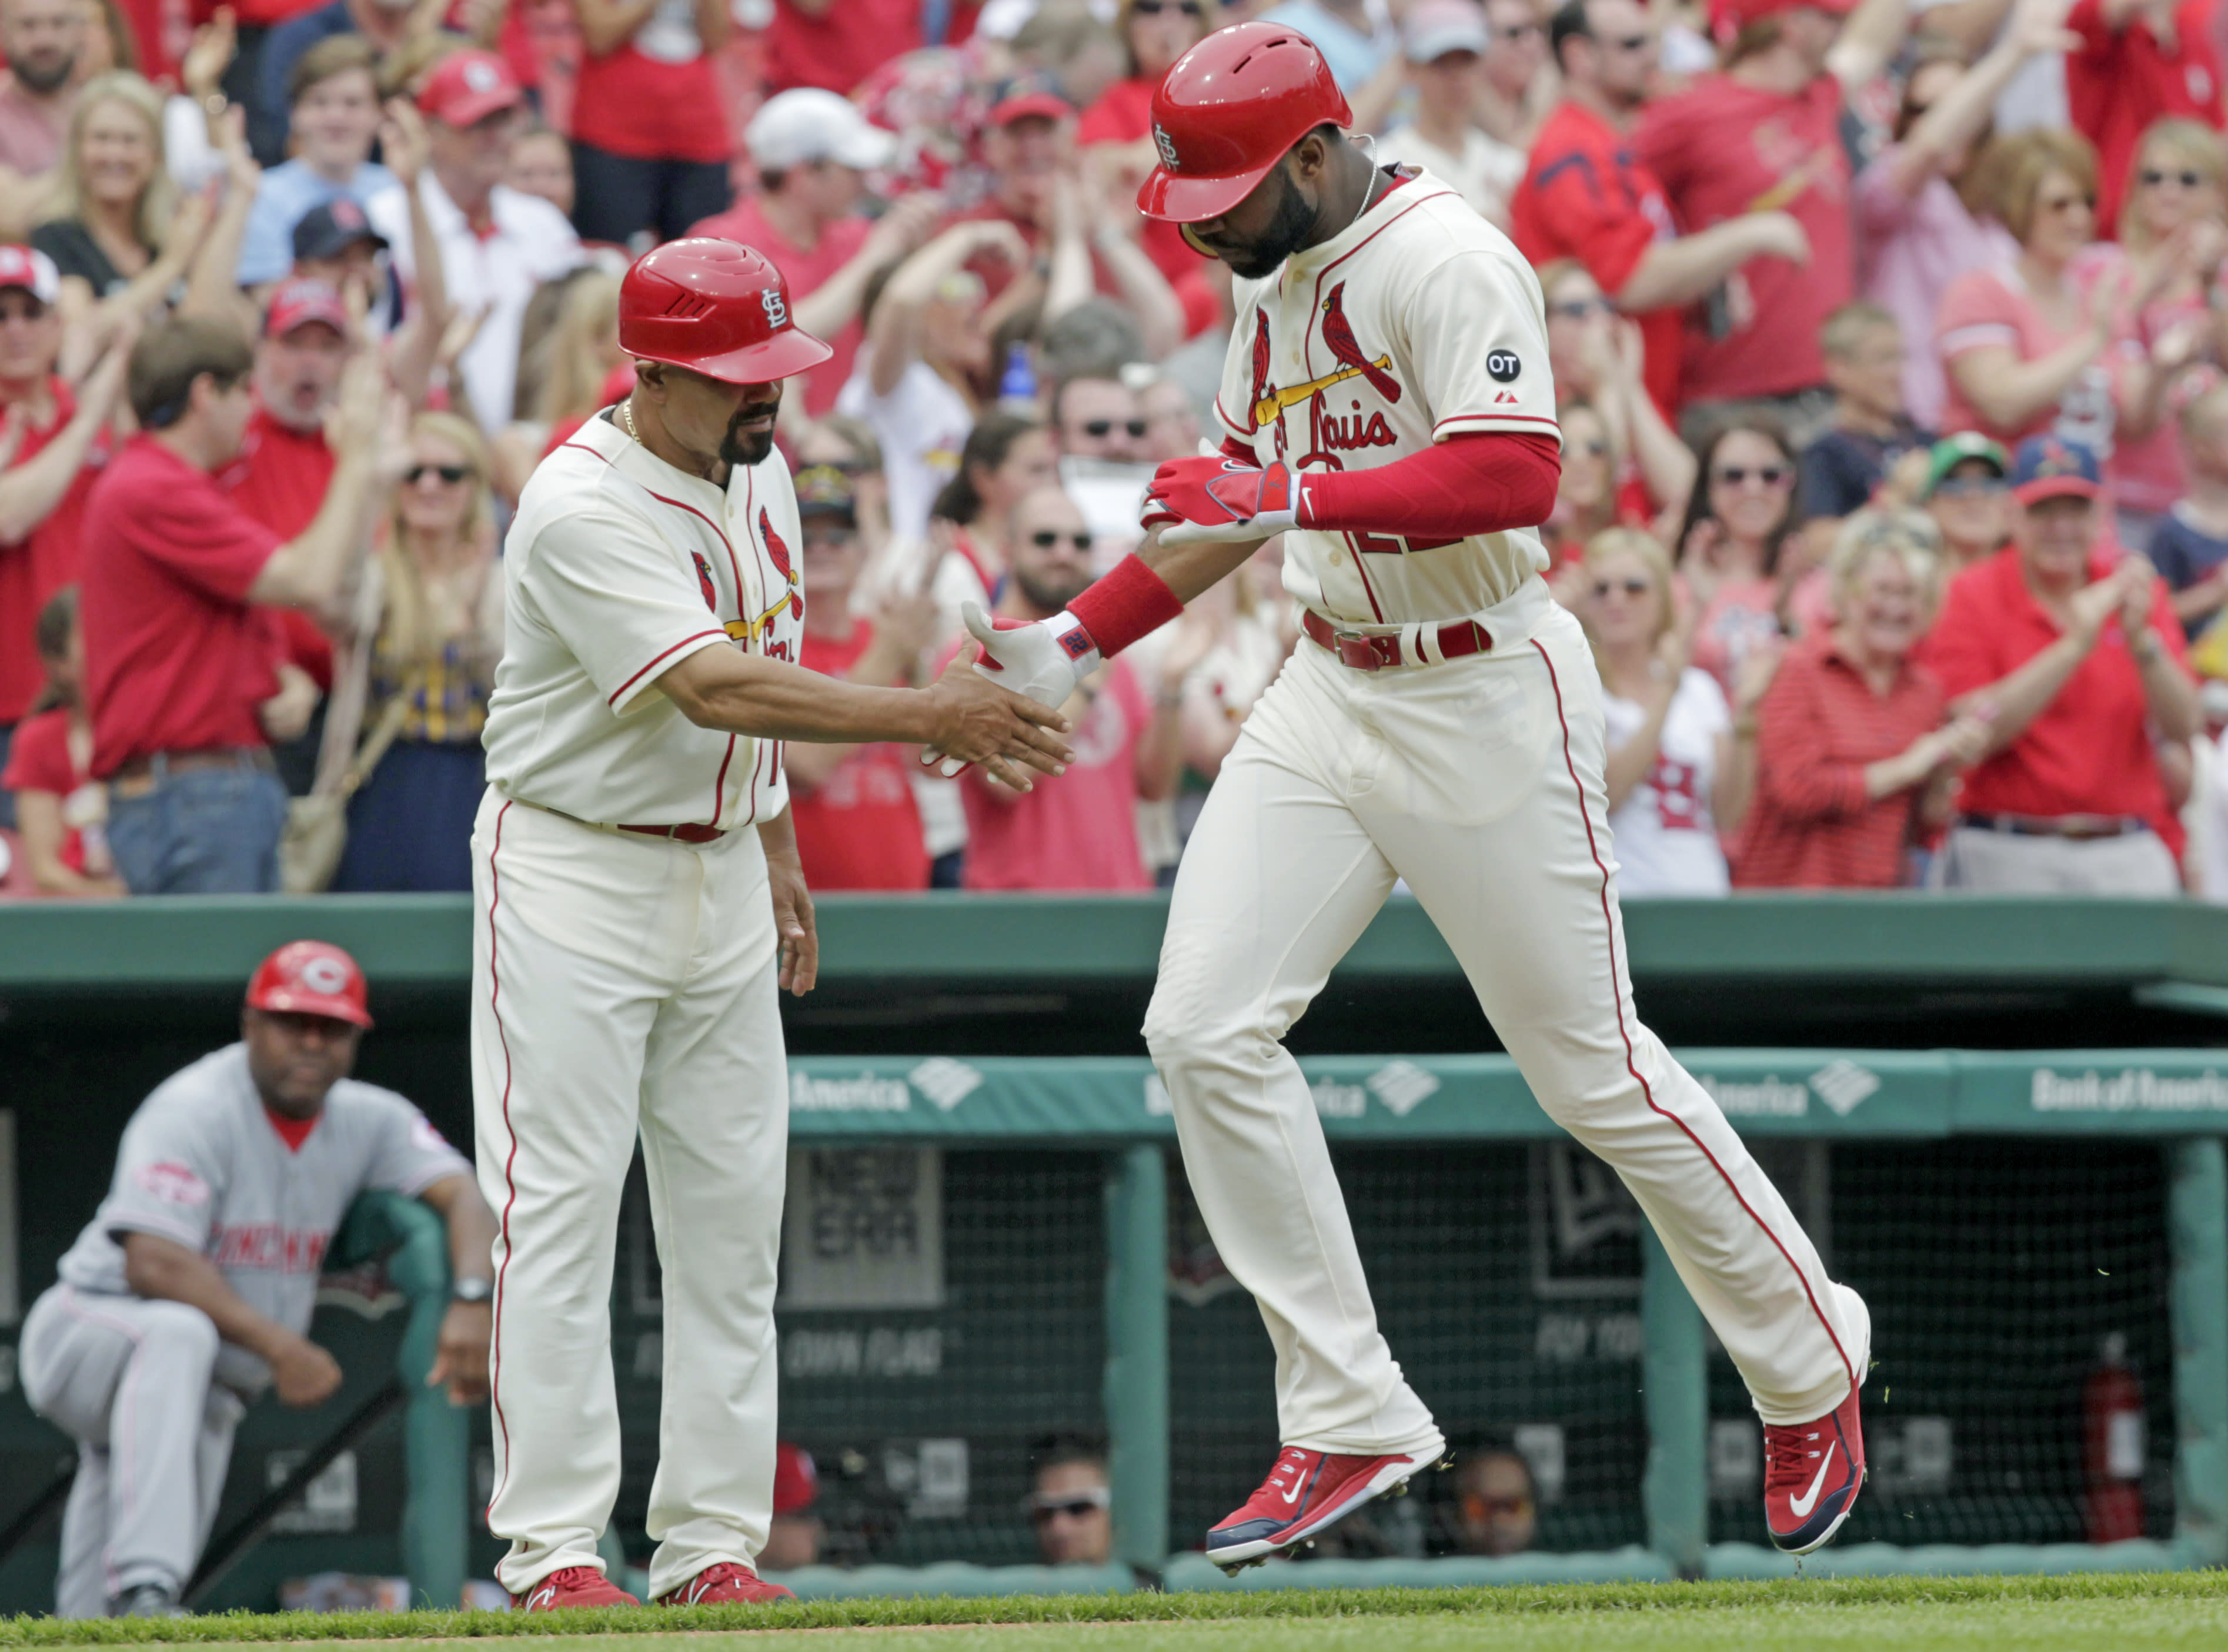 Martinez, Heyward, Cardinals beat Reds for 4th win in row